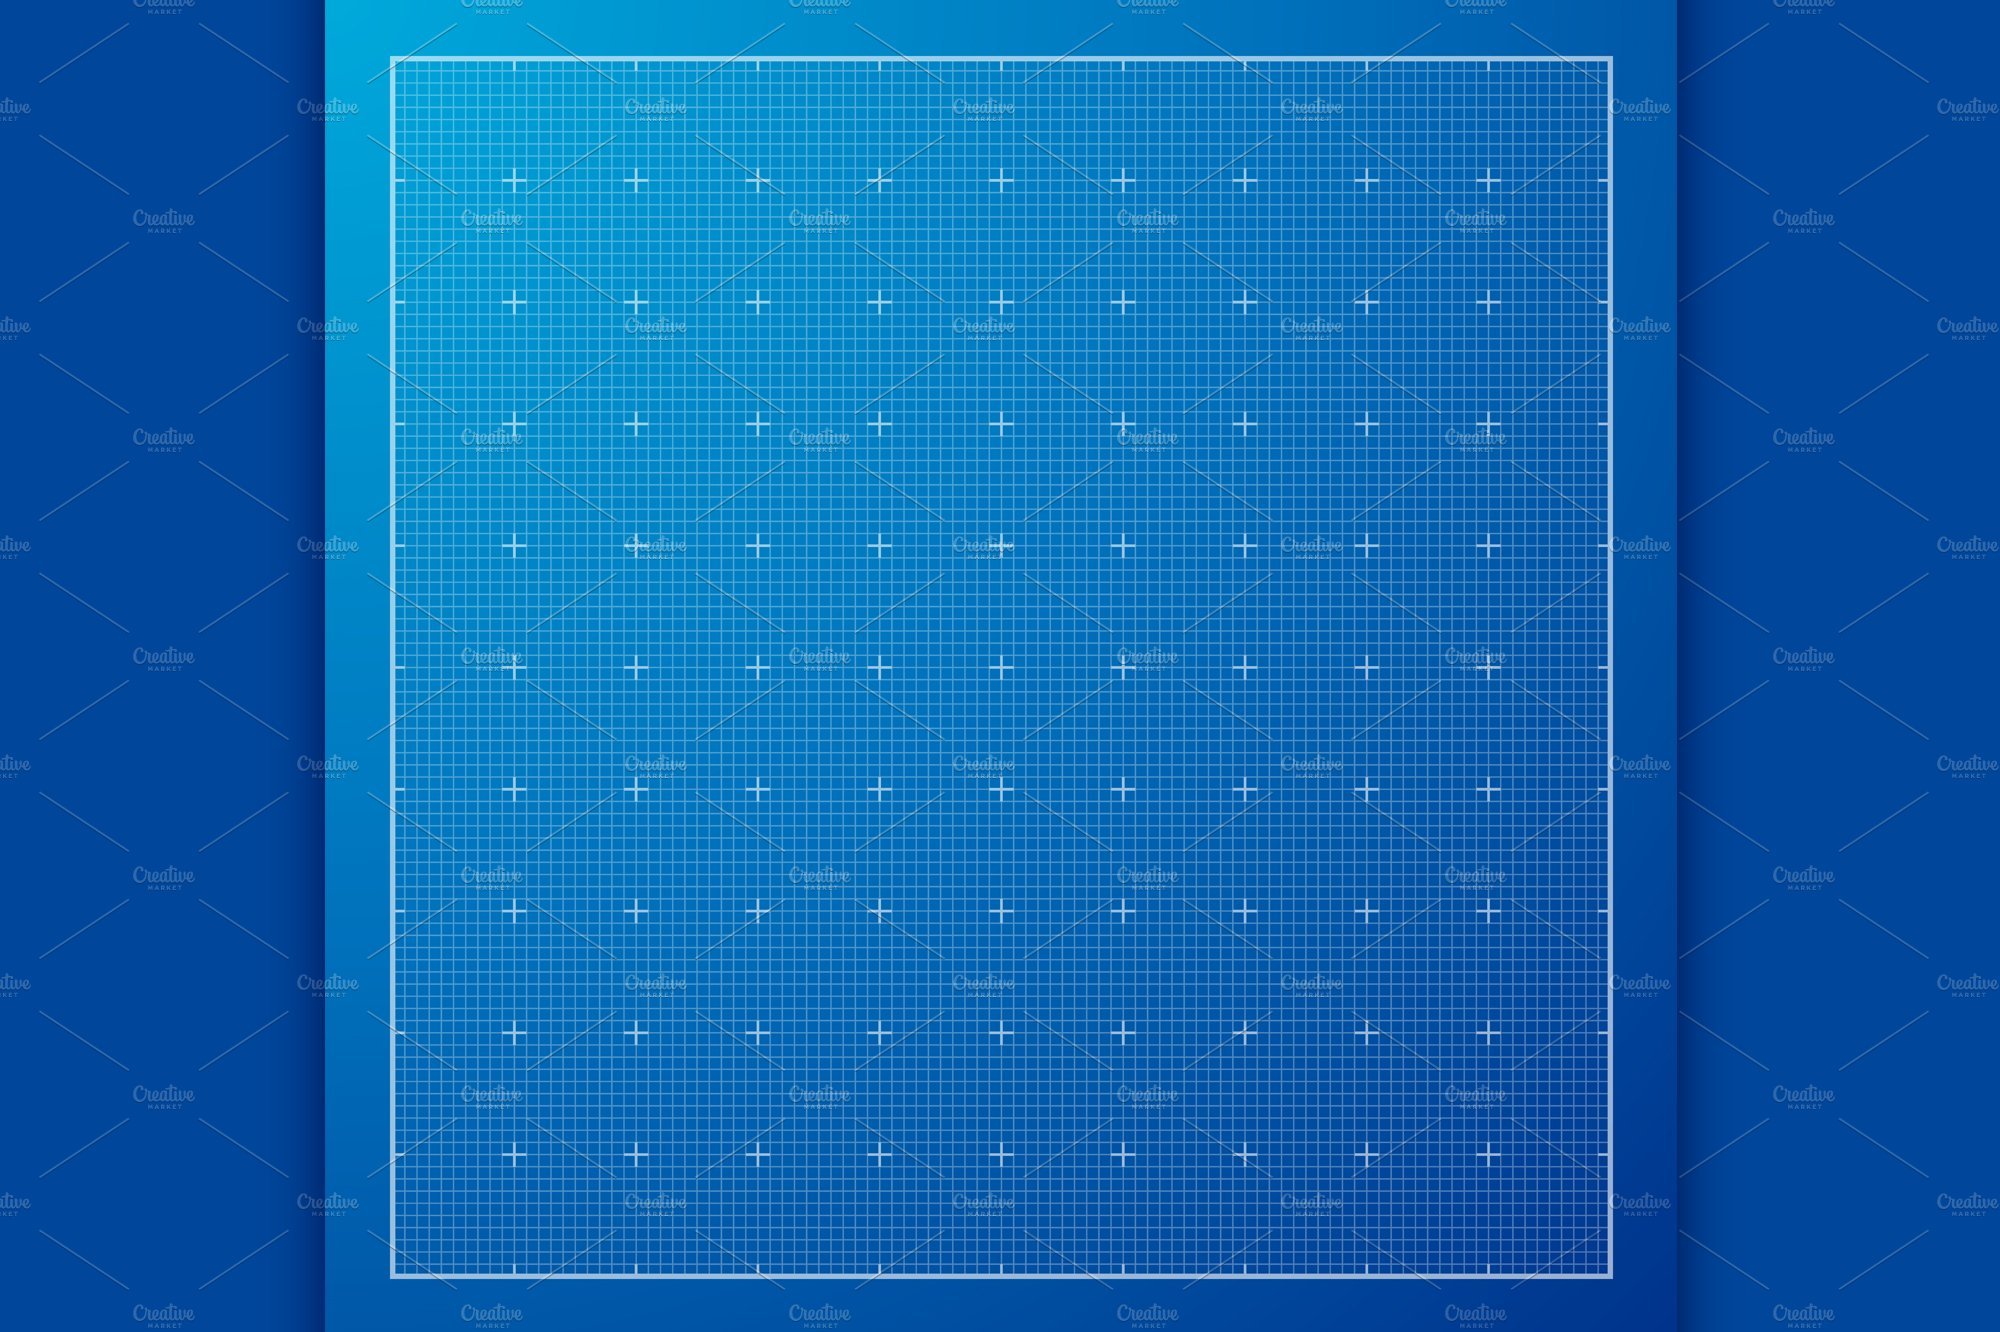 Blue graph grid paper background illustrations creative market malvernweather Choice Image